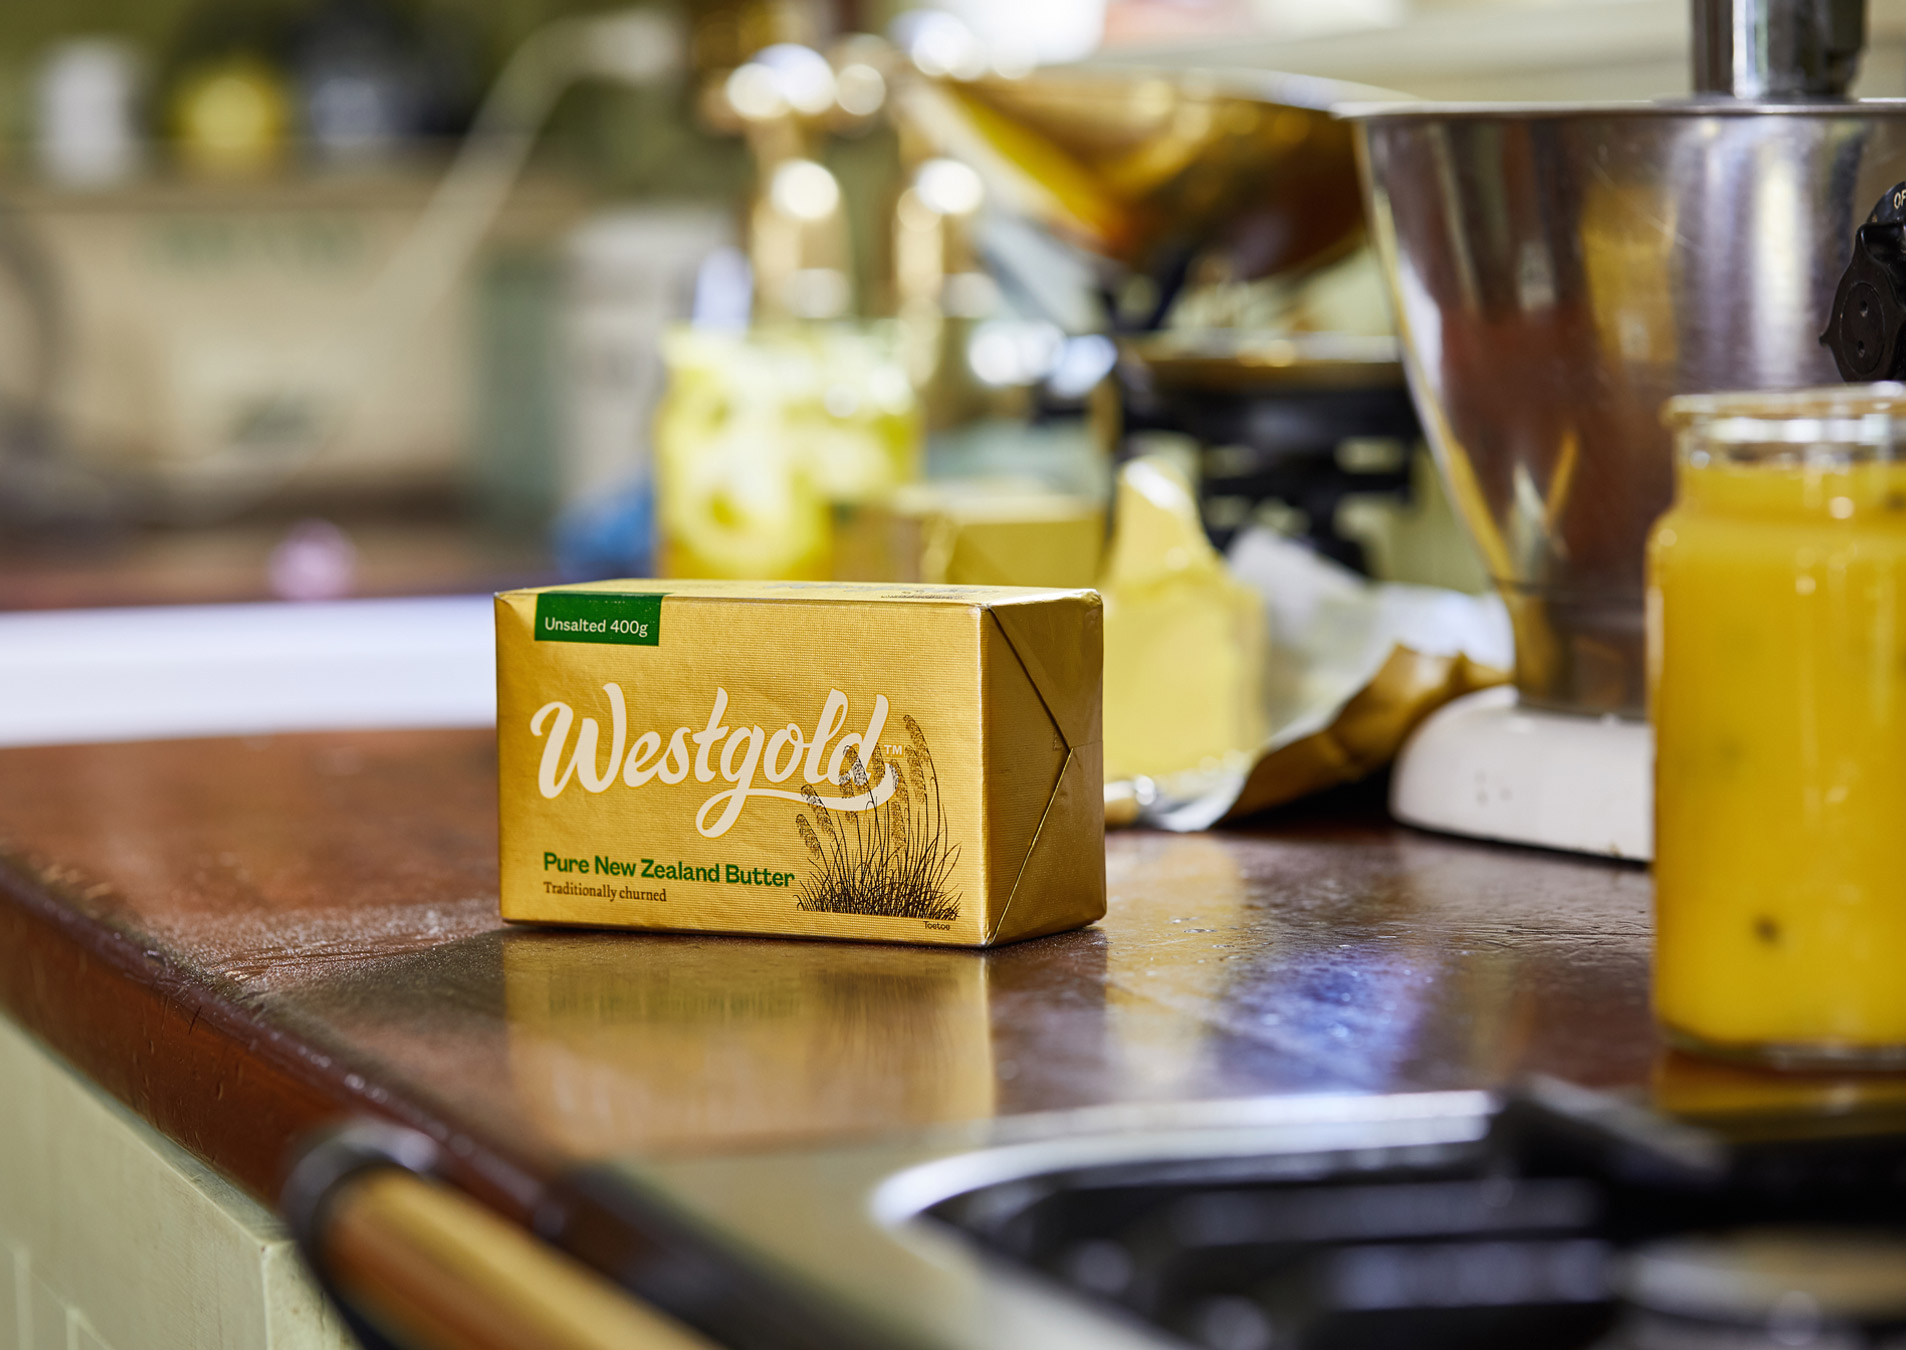 Westgold unsalted butter on bench 1906x1350